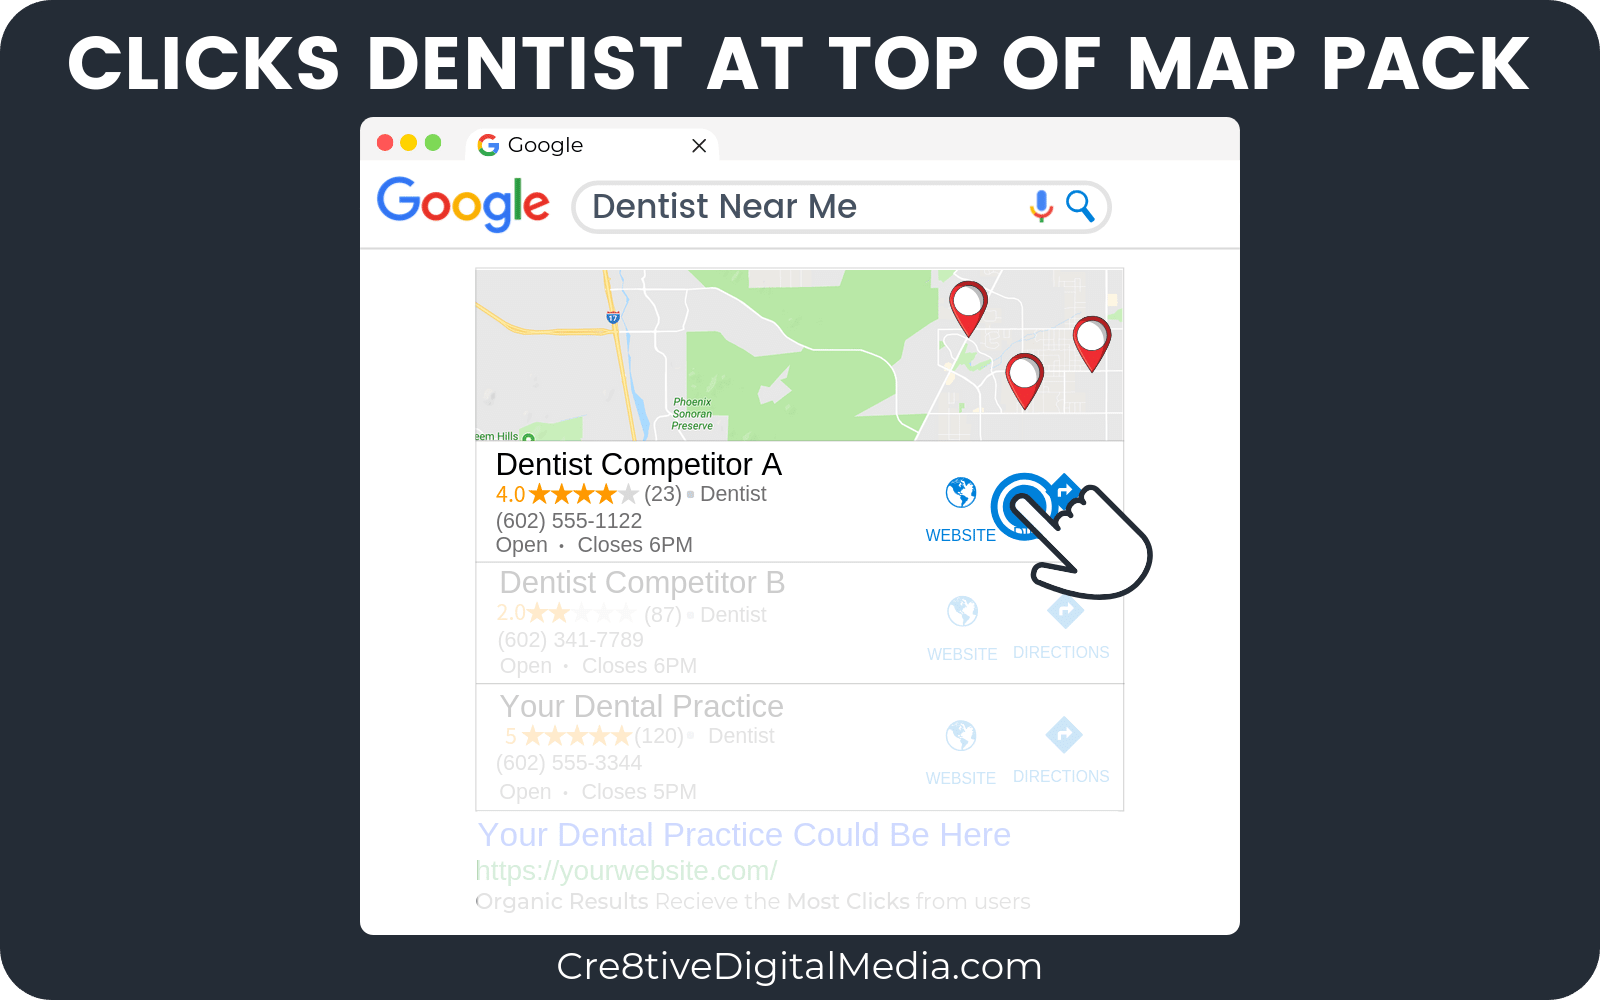 User clicks Dentist at top of Map Pack